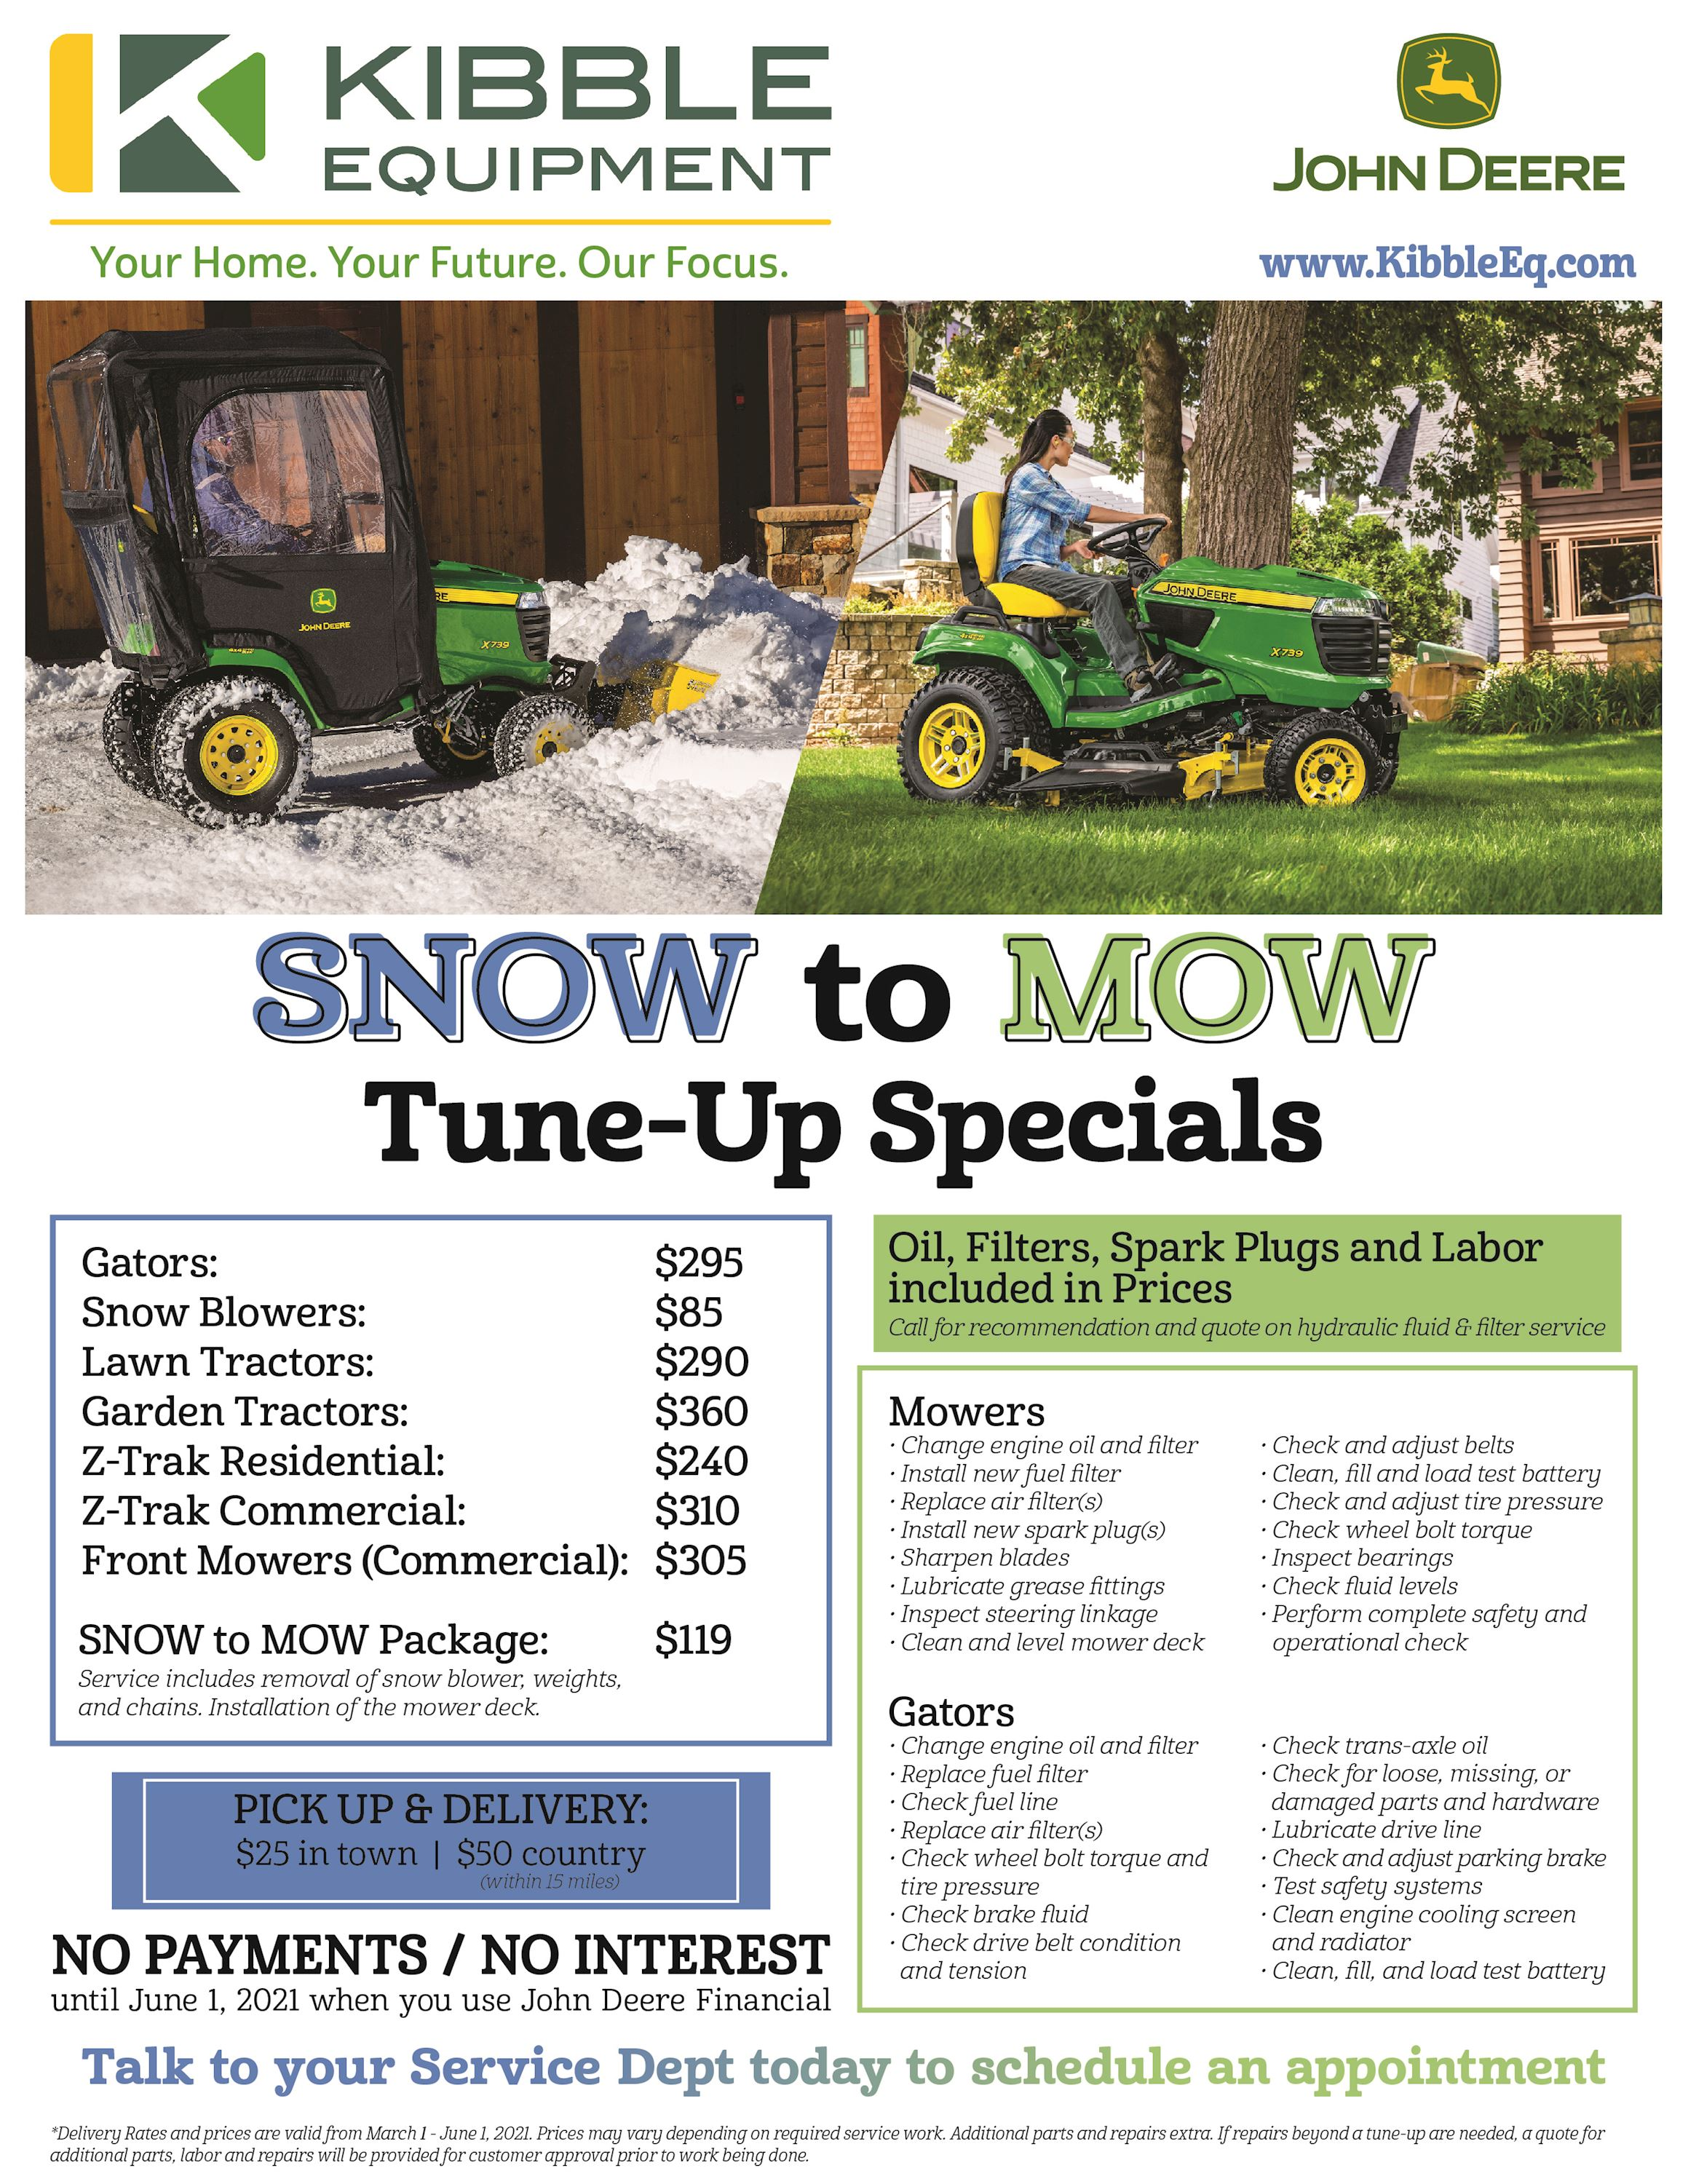 Snow to Mow Tune-Up Specials